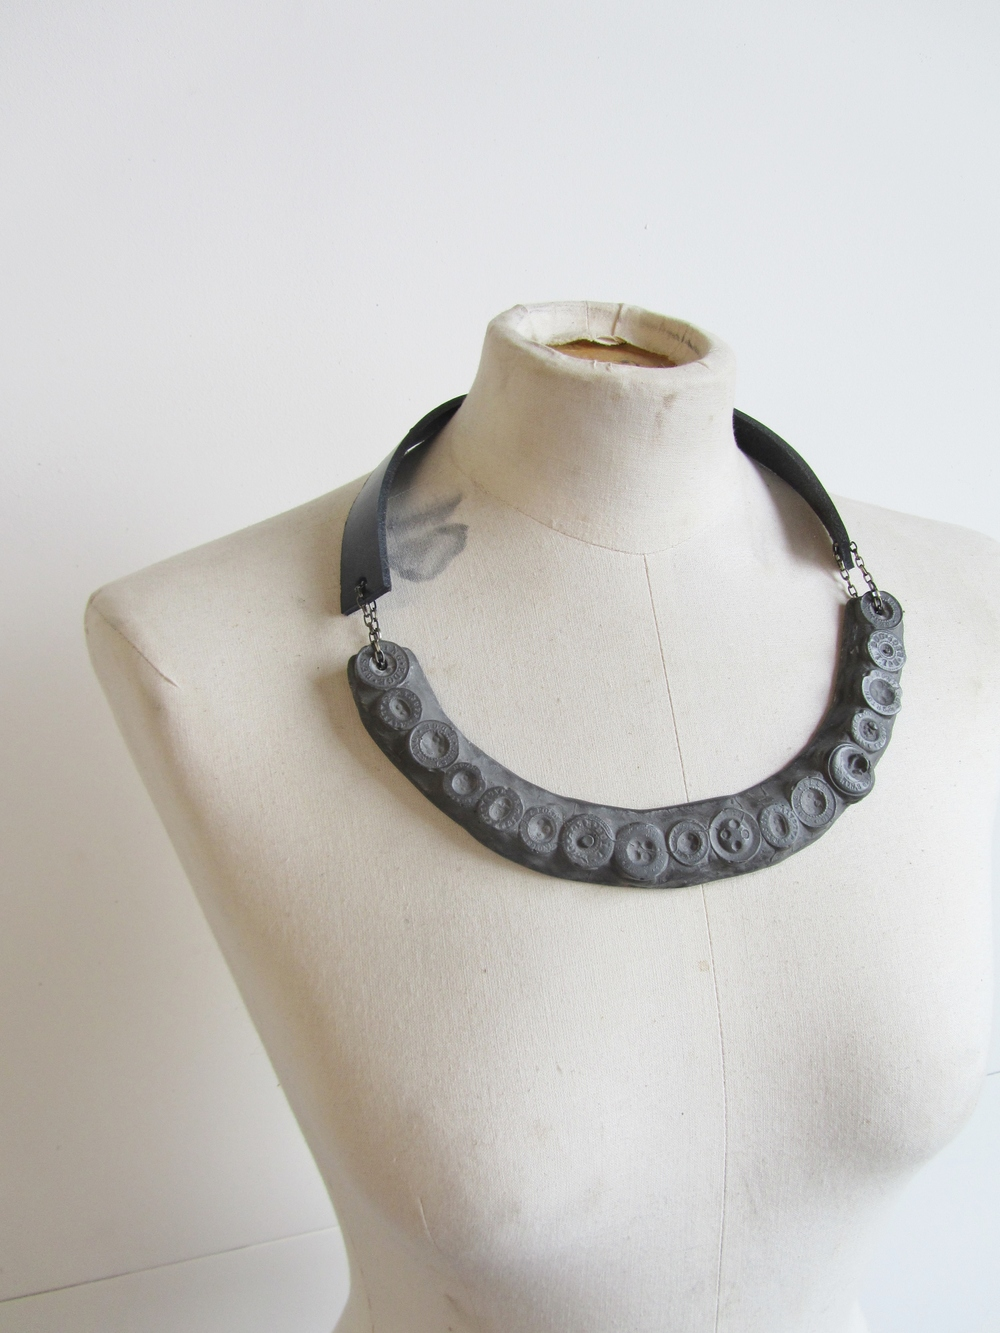 jade mellor button leather resin necklace.JPG